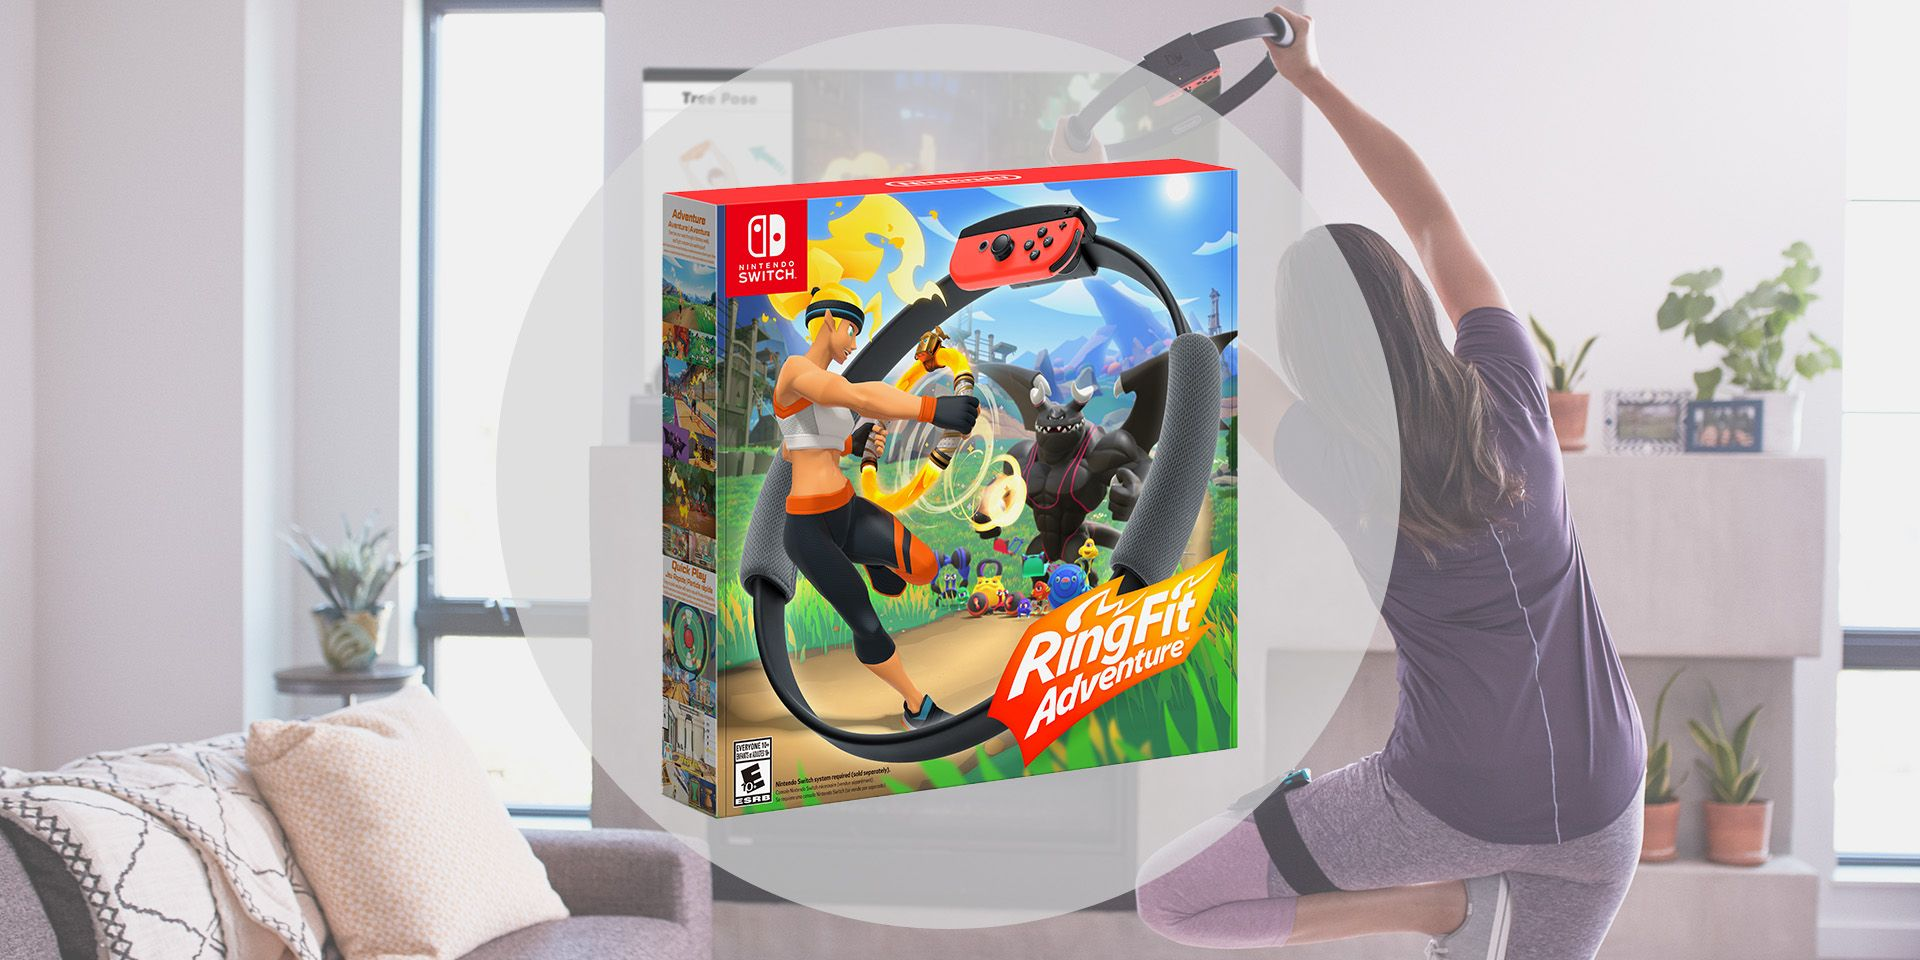 Nintendo's Ring Fit Adventure Is Getting Us to Exercise in a Legitimately Cool Way